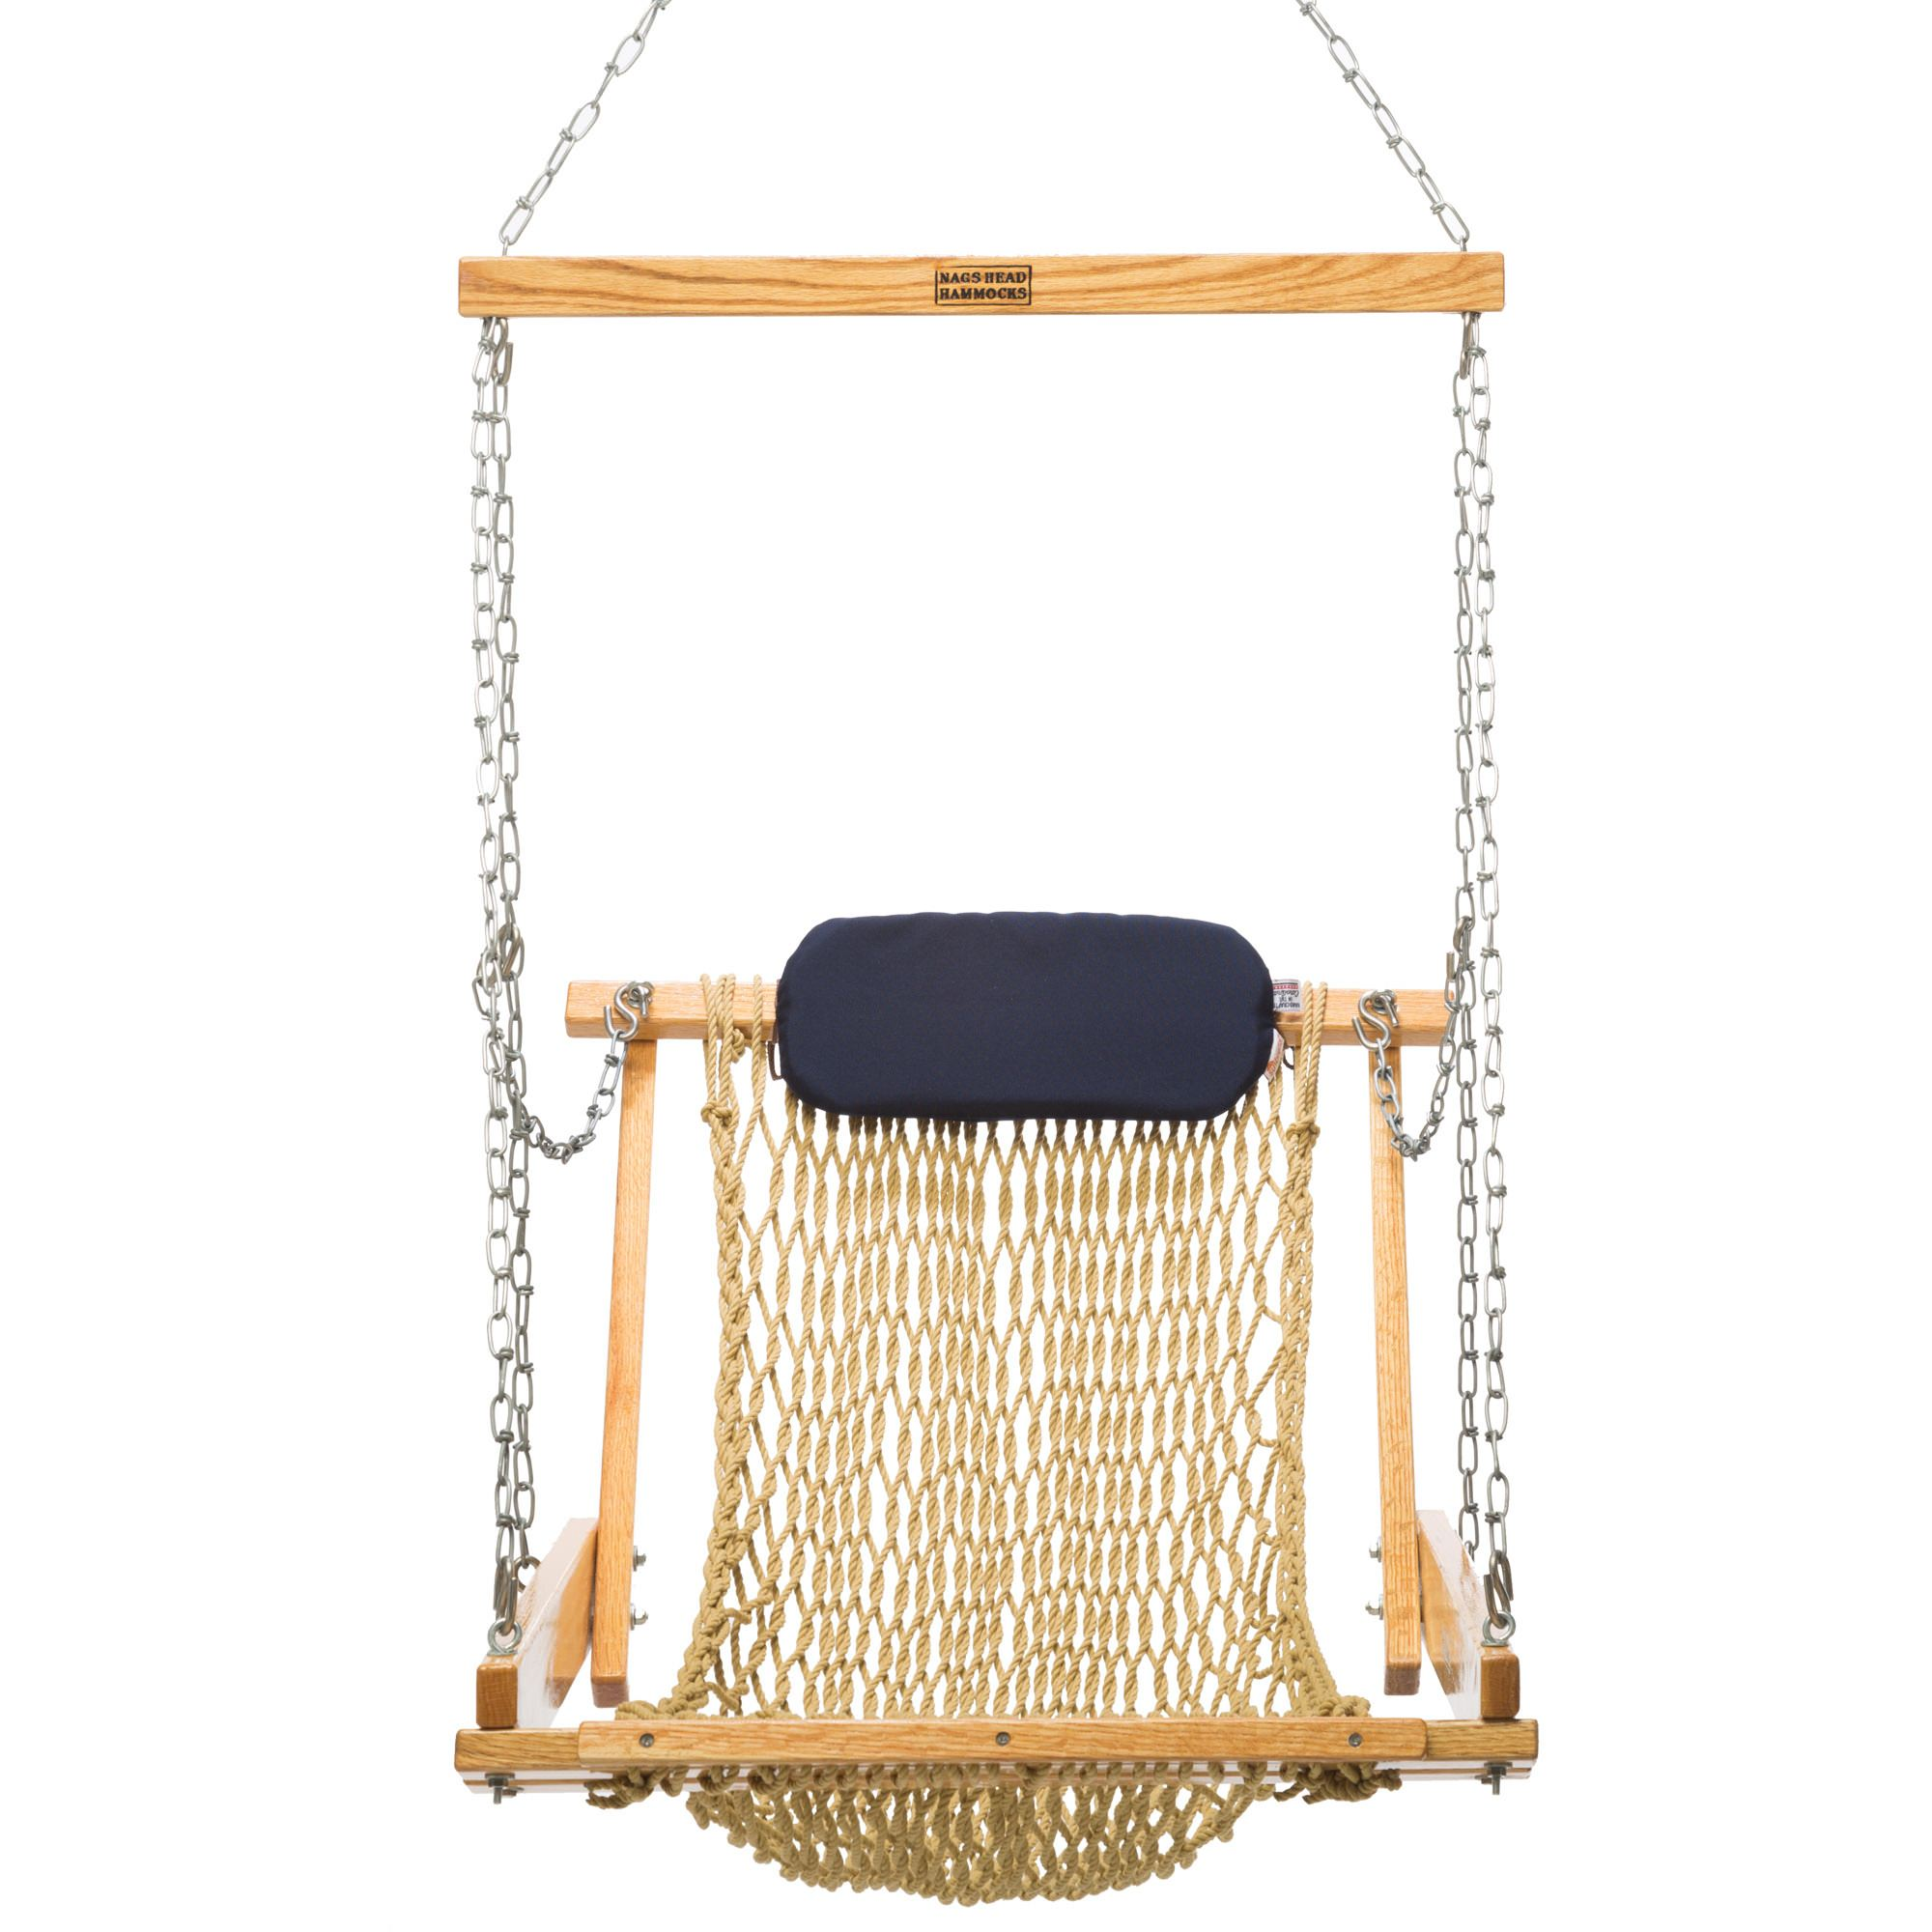 single person hammock chair moen shower hanging